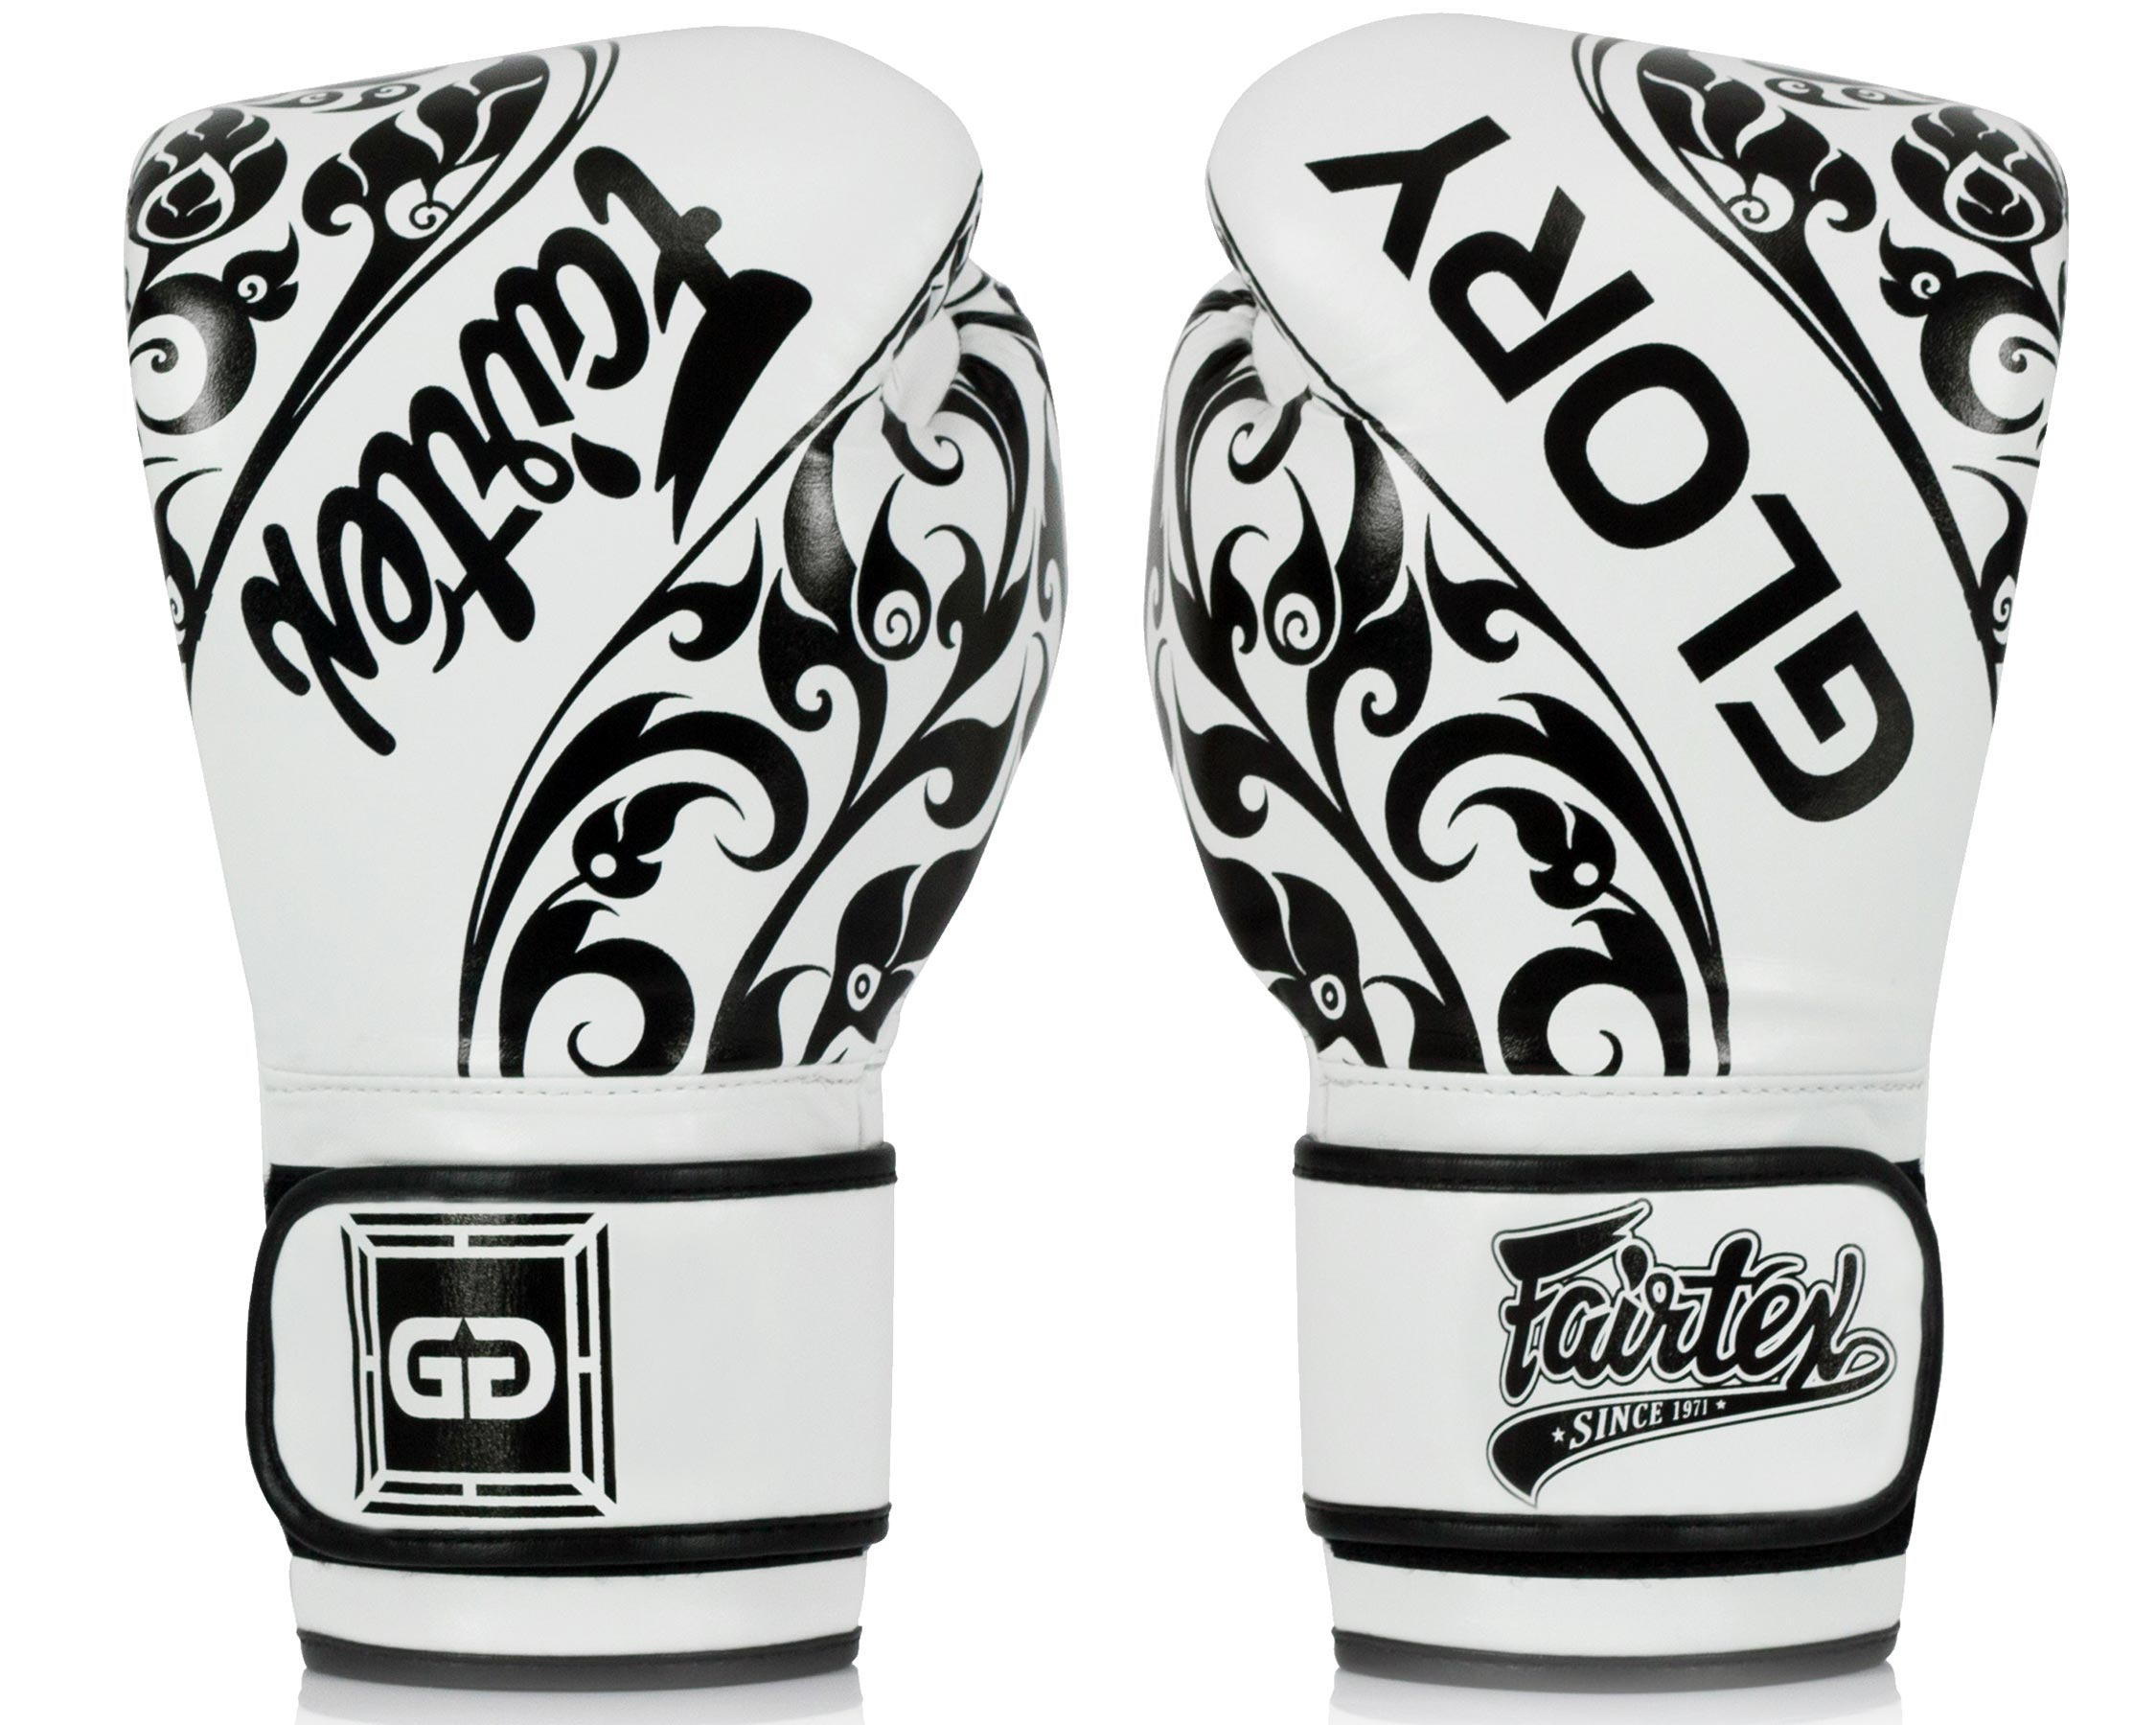 Gants de boxe Fairtex Glory Blanc